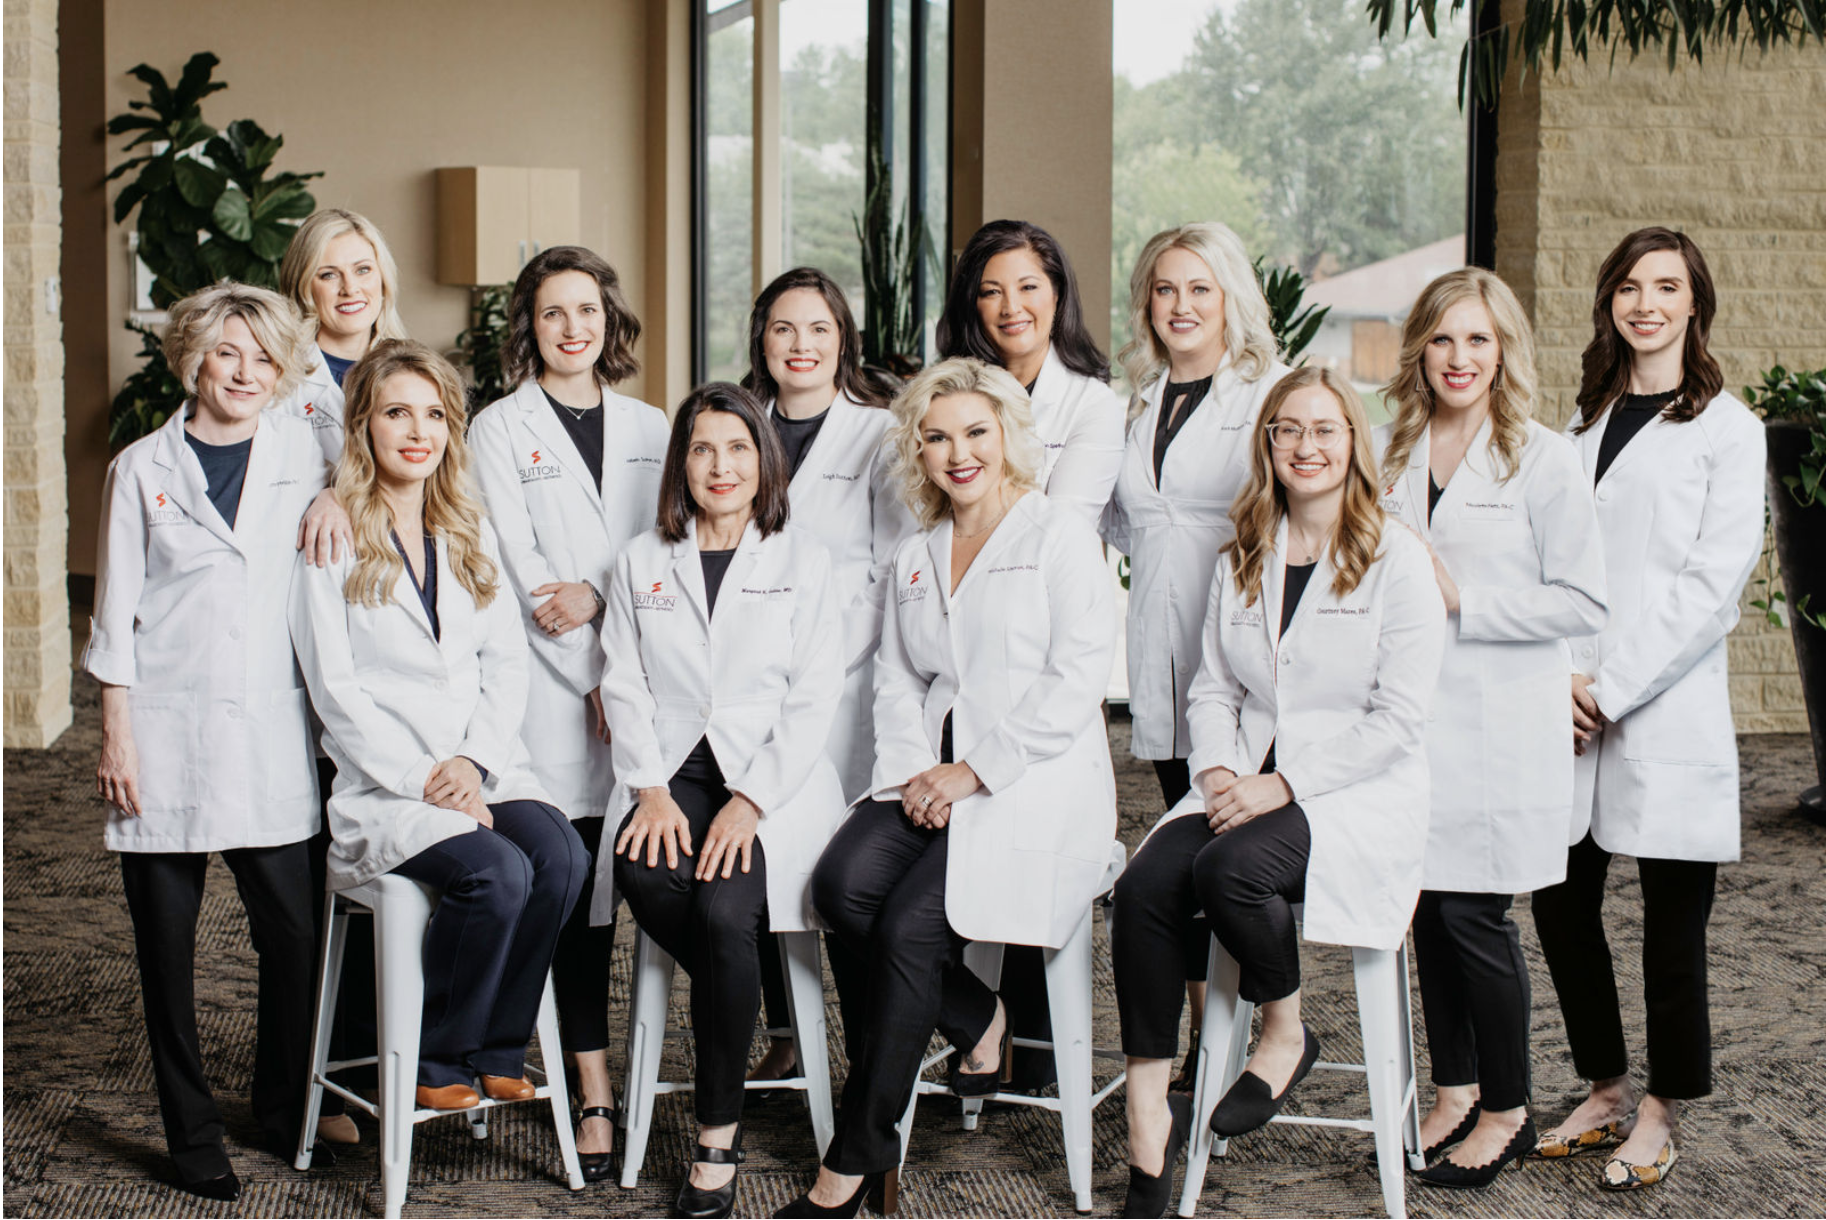 Sutton Dermatology & Aesthetics providers group picture